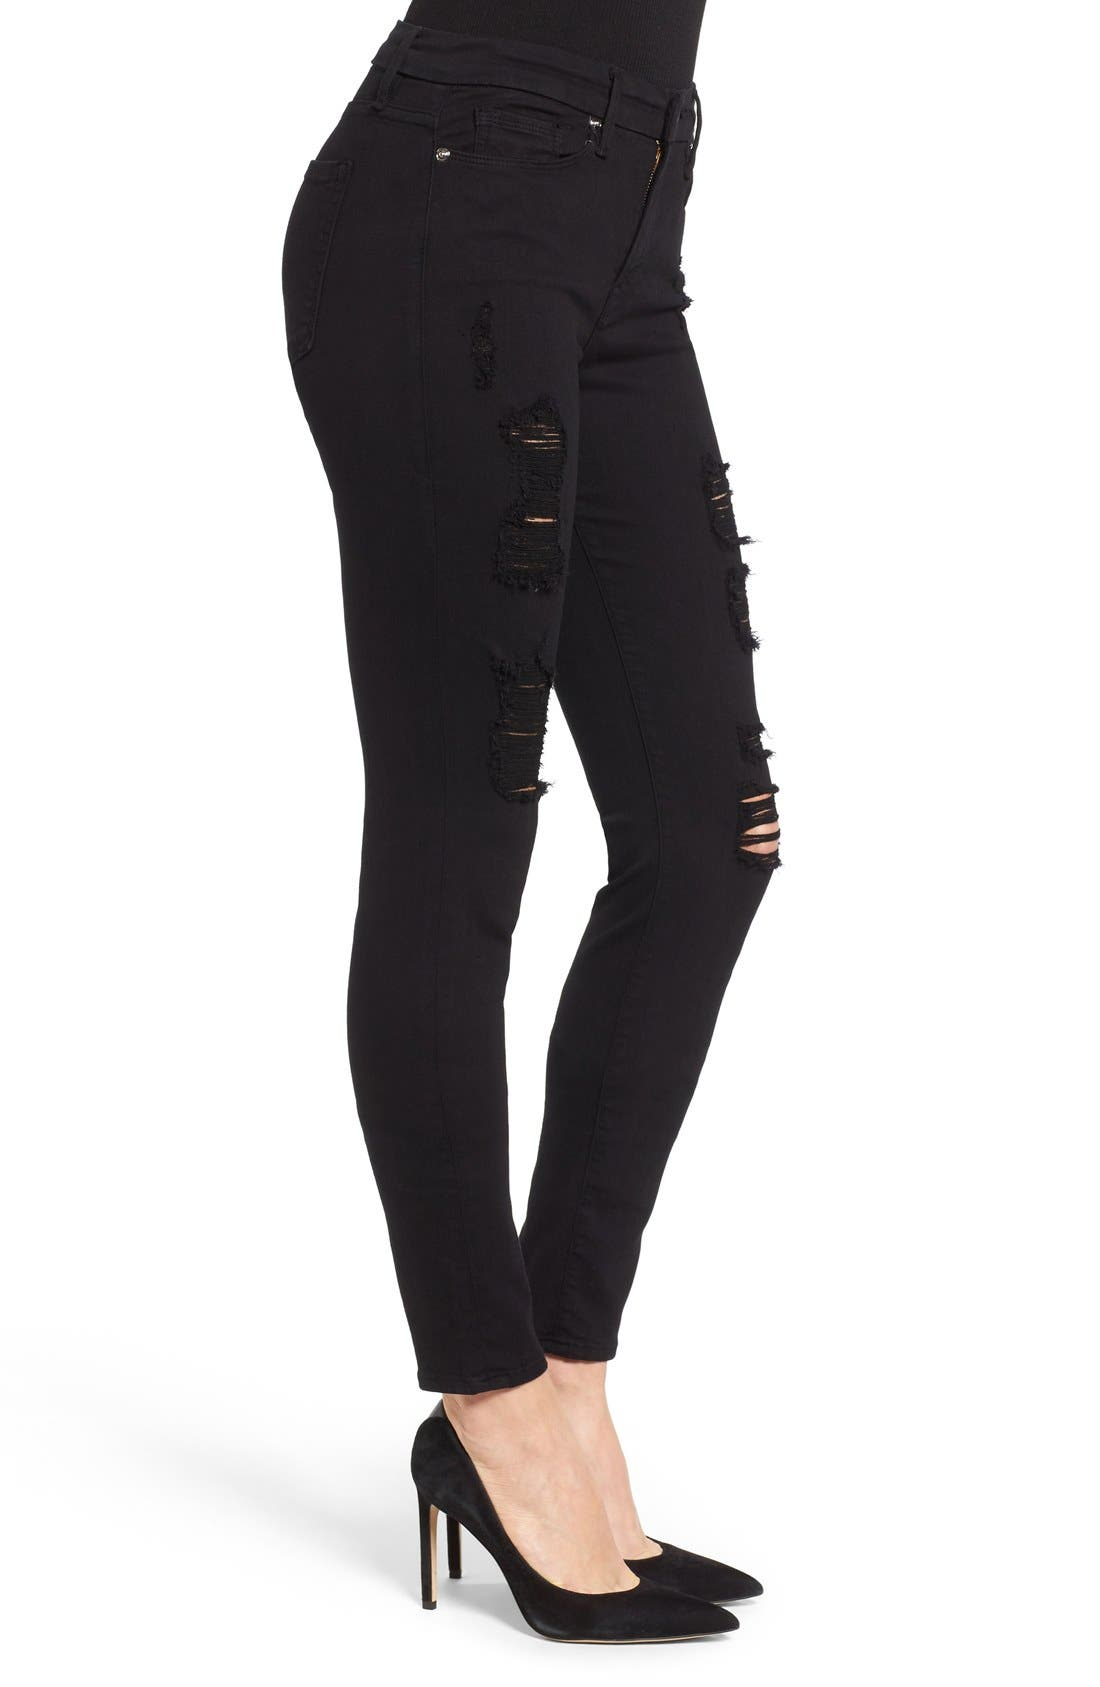 Alternate Image 3  - Good American Good Legs High Rise Ripped Skinny Jeans (Black 002)